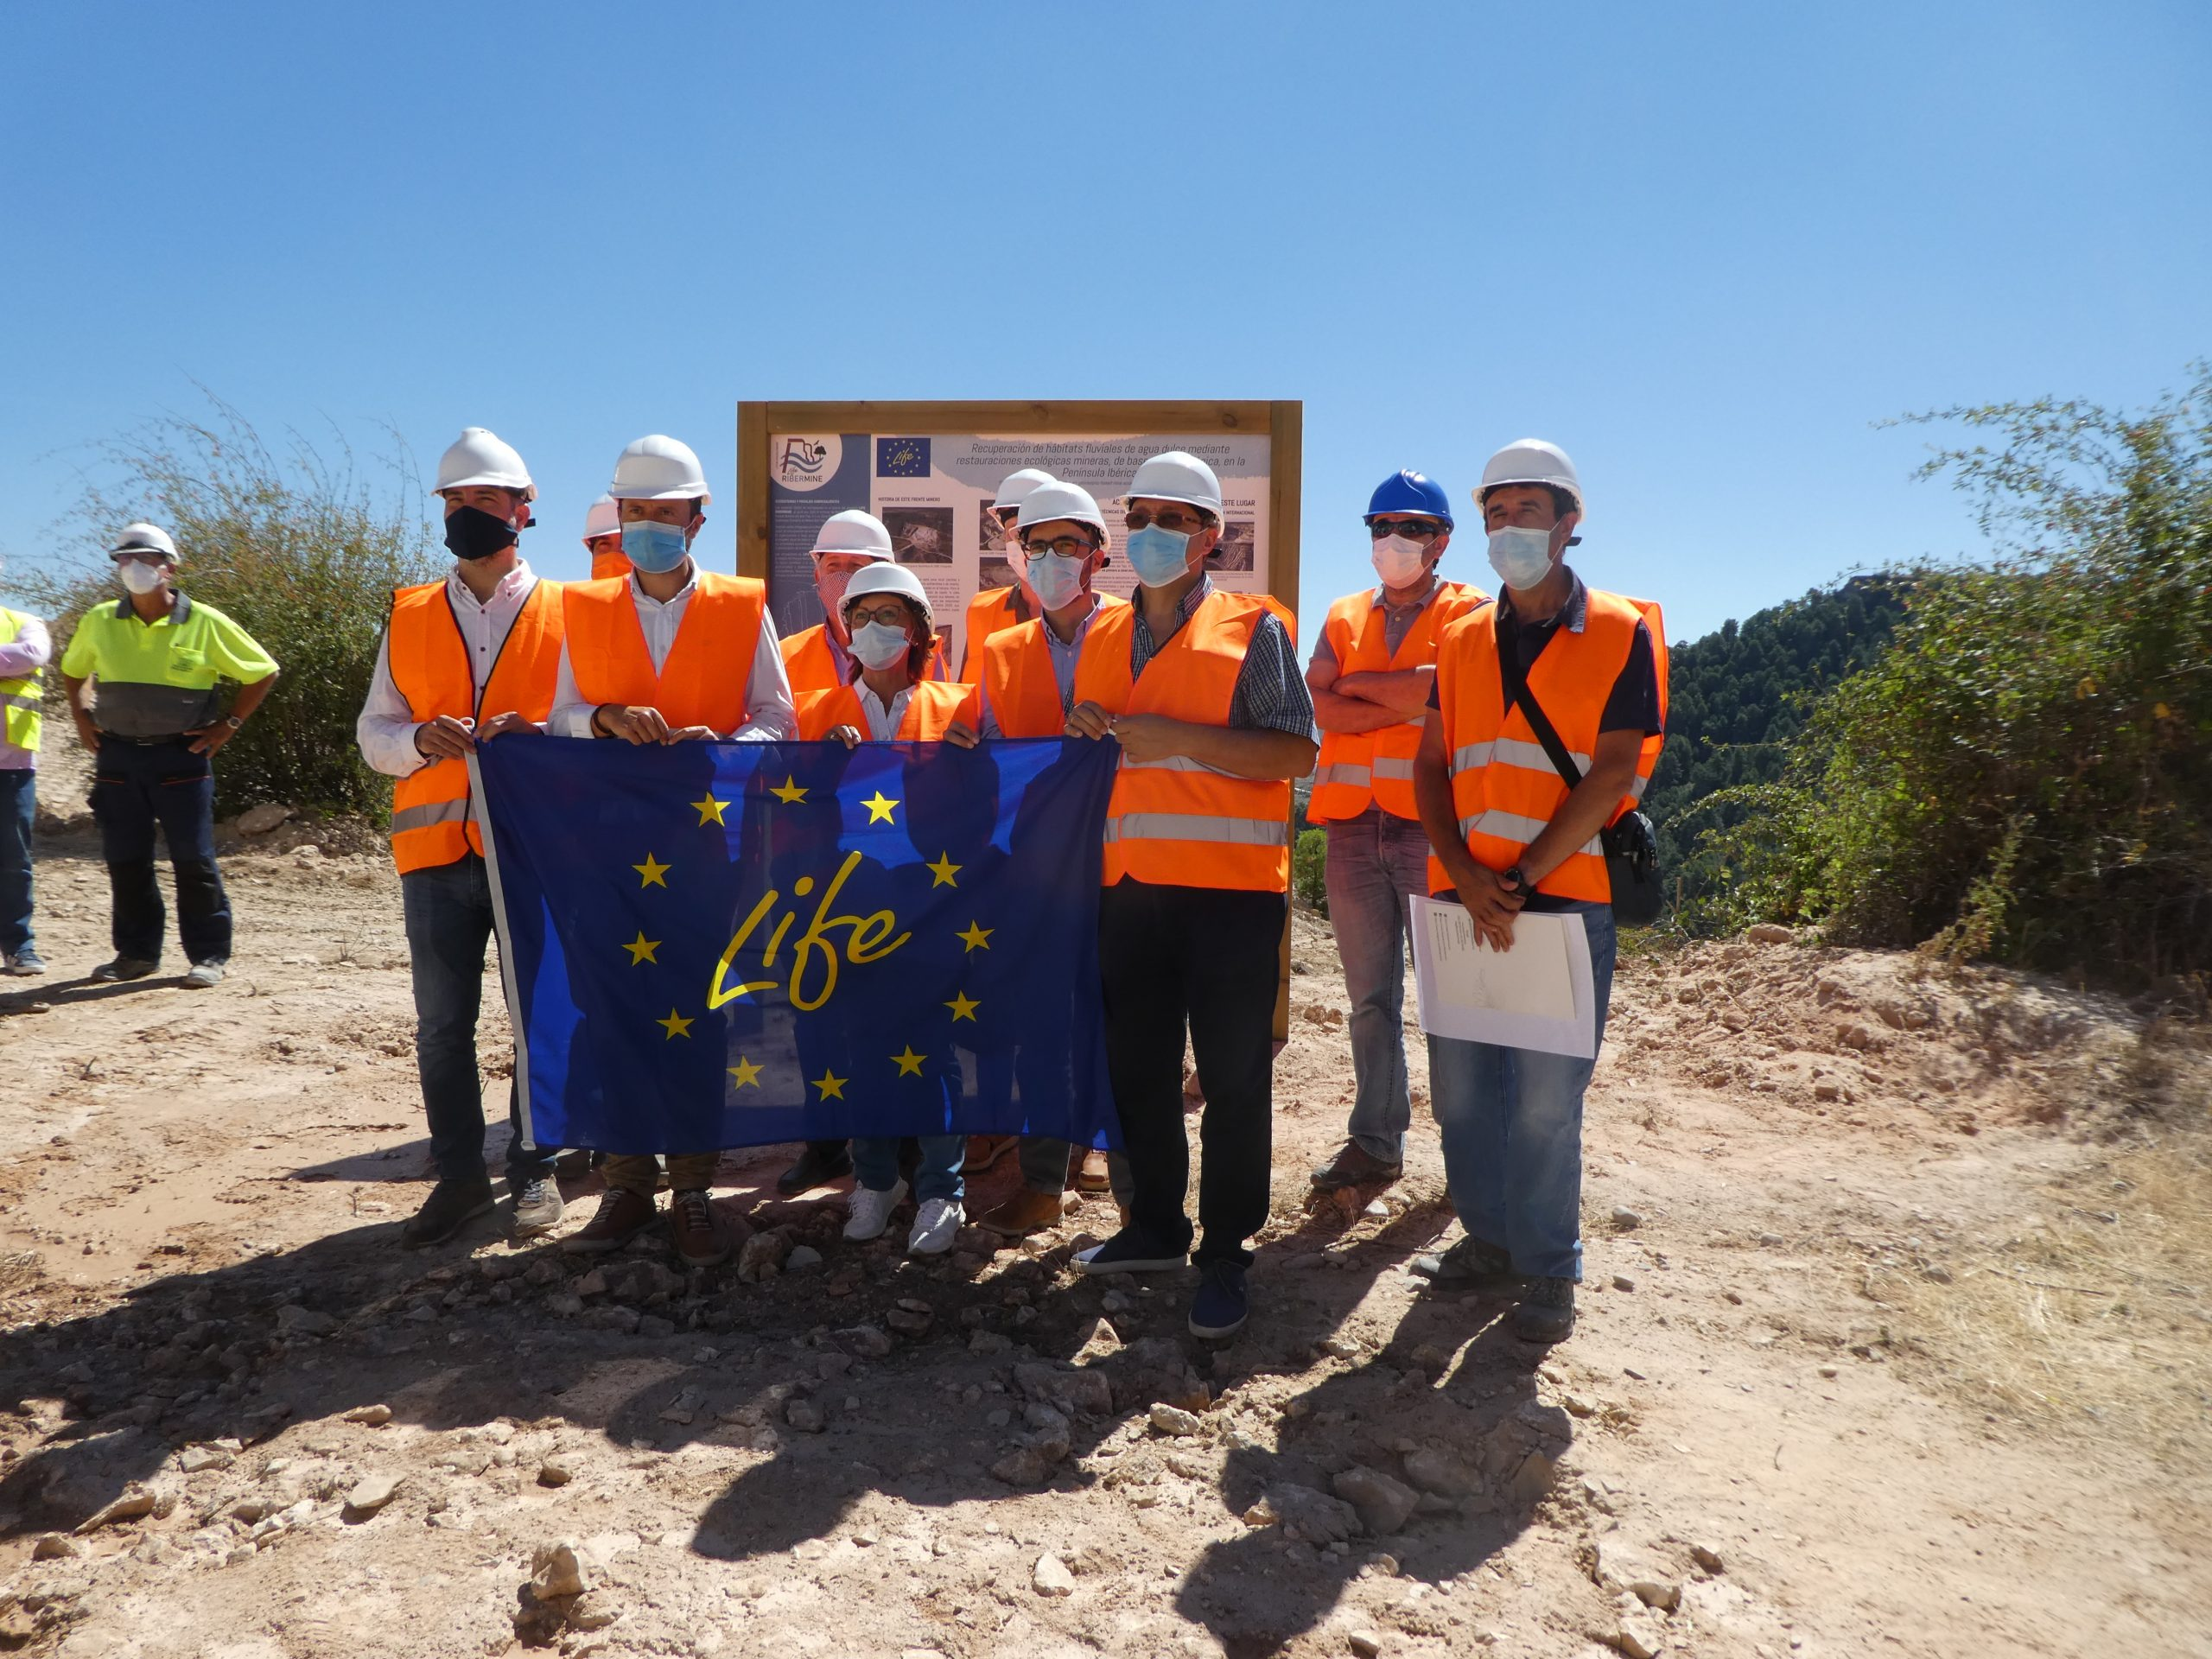 The Life Ribermine European Project, sponsored by the Government of Castilla-La Mancha, recognized among the best regional practices in energy and climate action of the European Green Deal